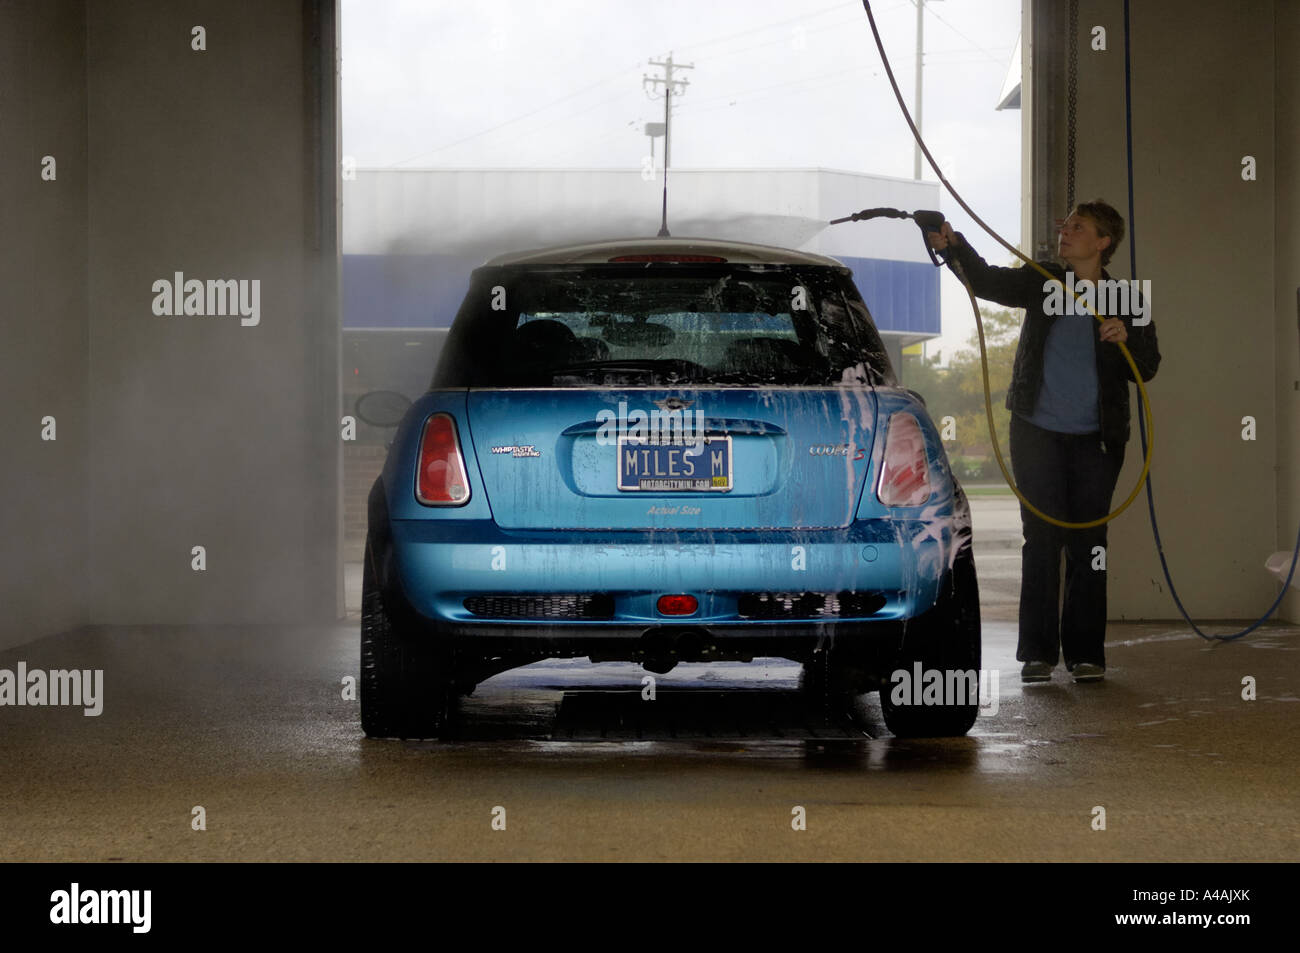 Self serve car wash stock photos self serve car wash stock woman washing a mini cooper s at a do it yourself car wash stock image solutioingenieria Image collections